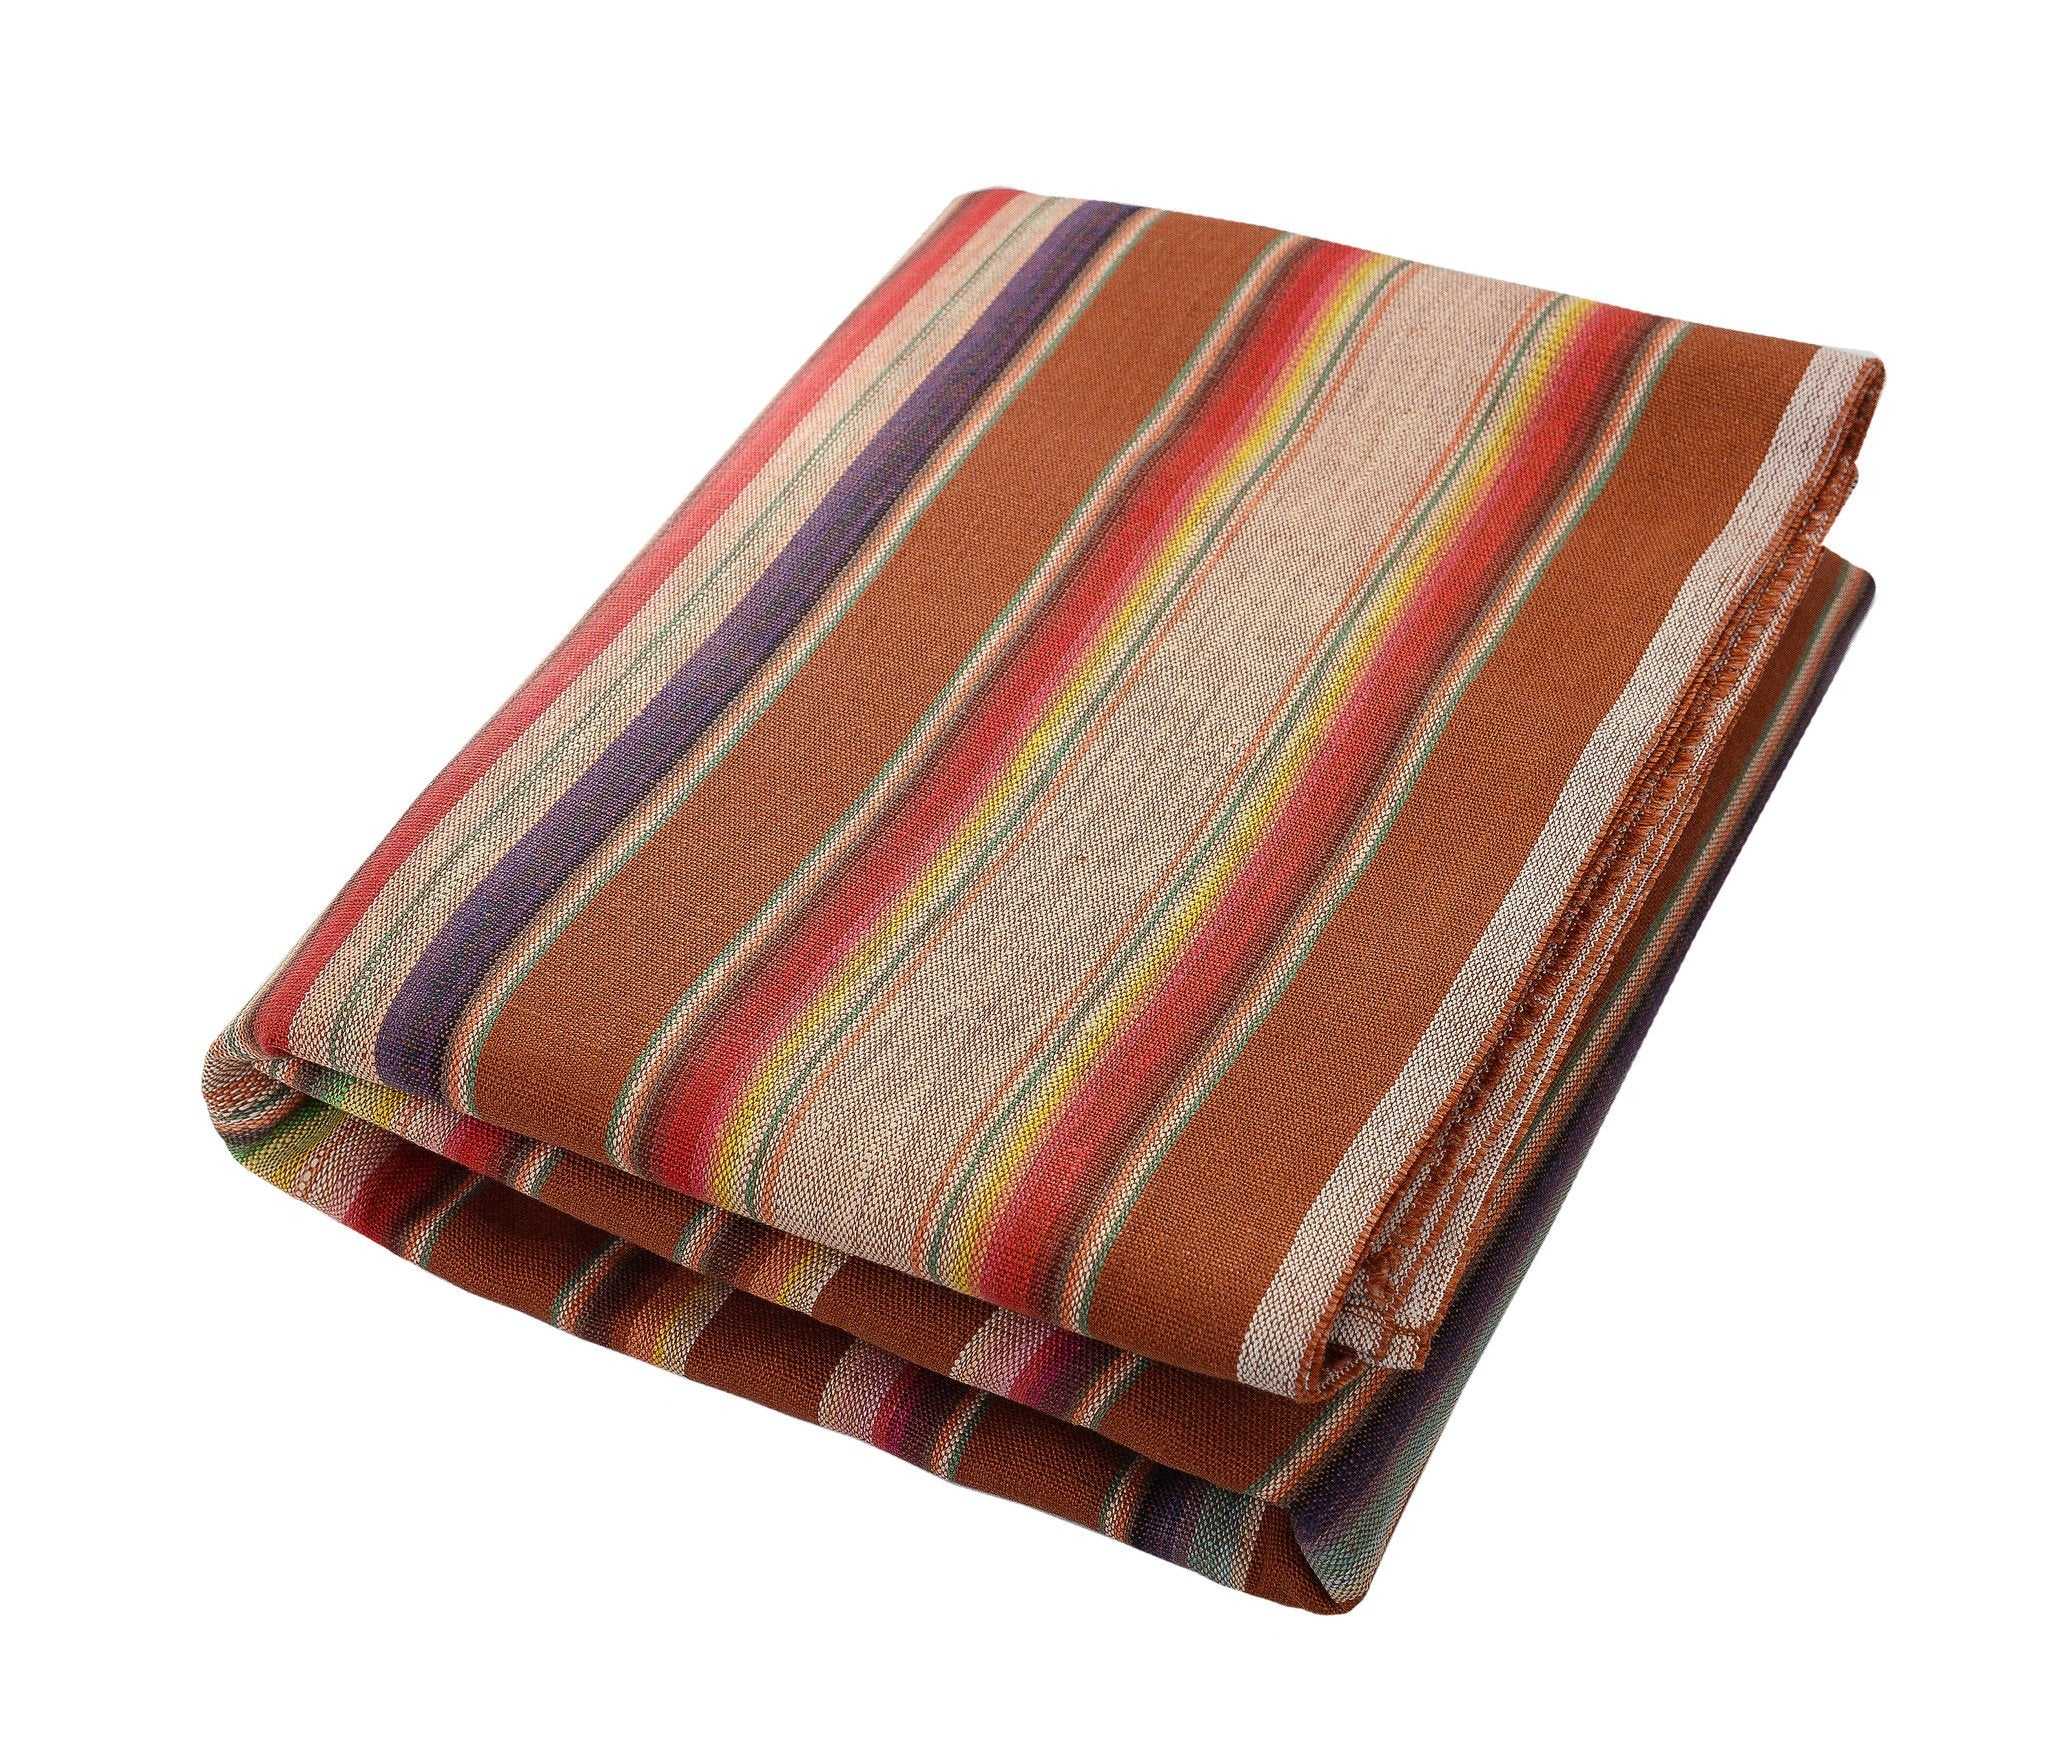 Theo:  Camel & Fourteen Multicolored Stripes, Beach Towel - Deck Towel